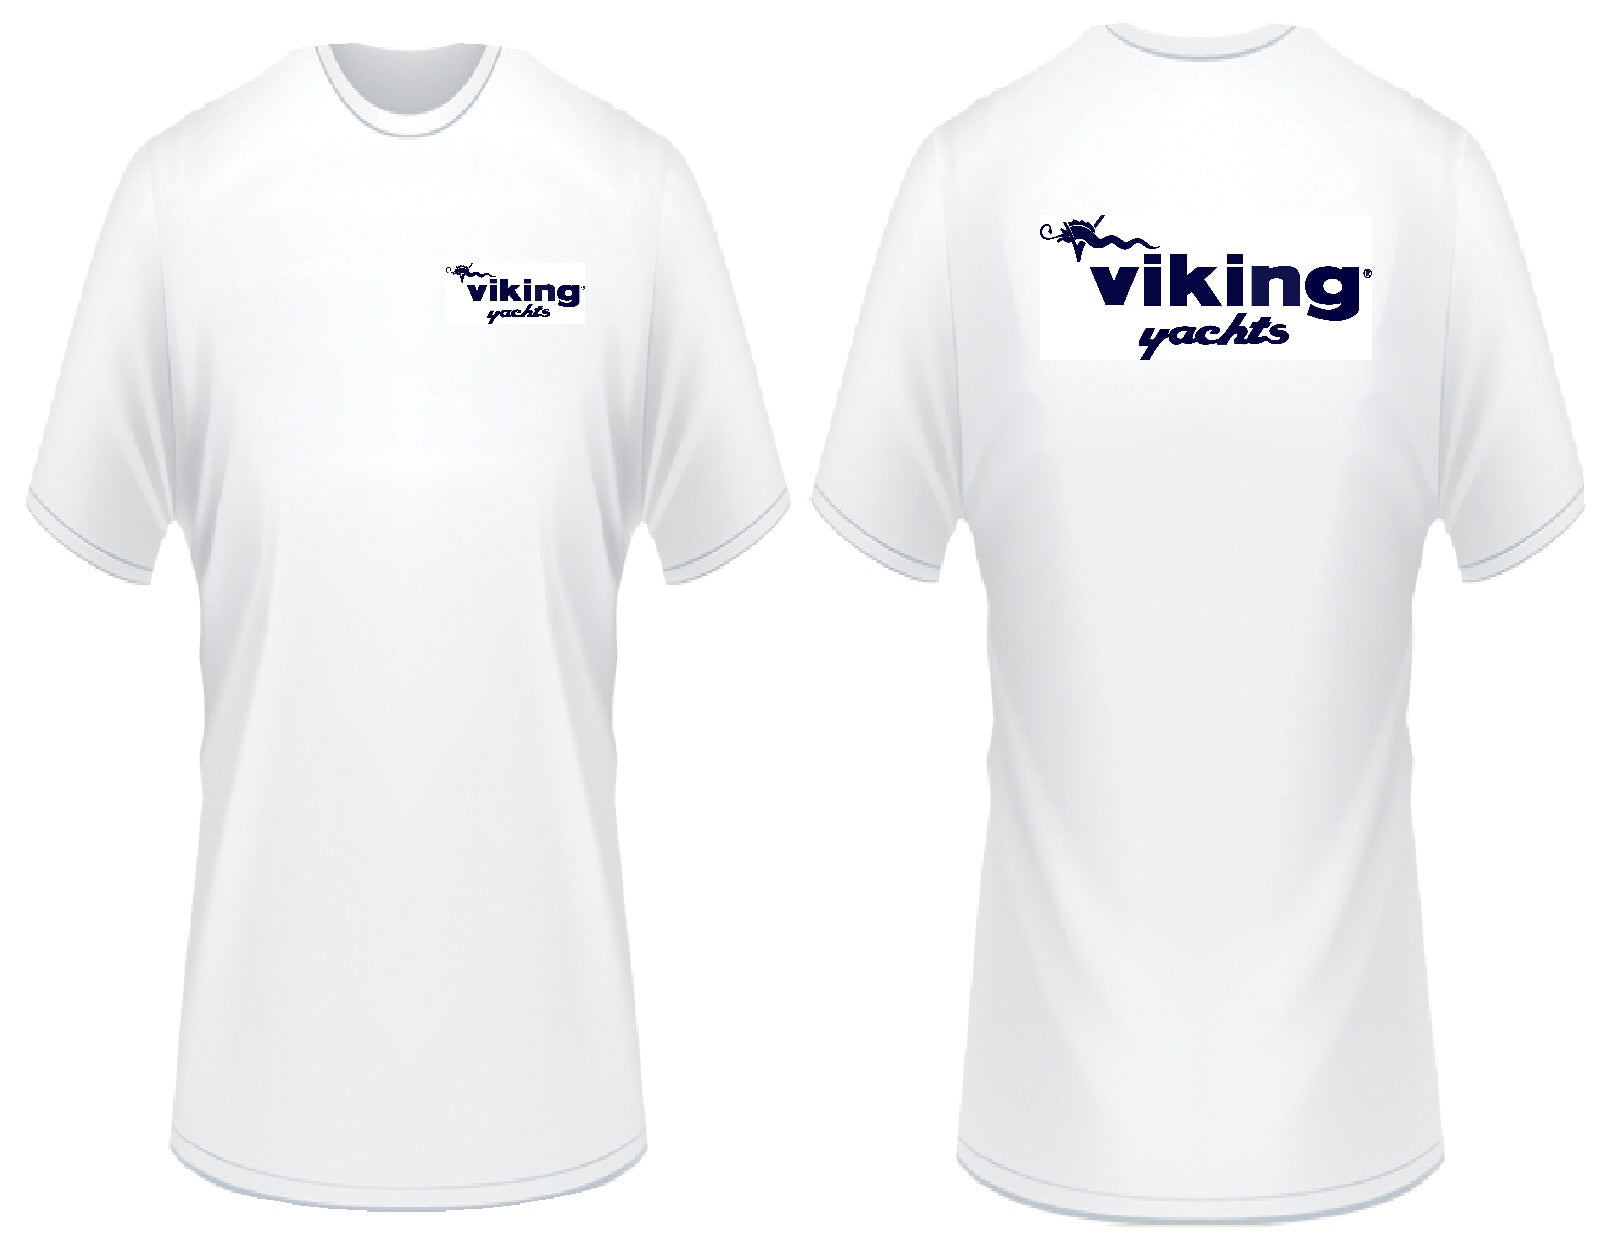 Viking Yachts T-Shirt